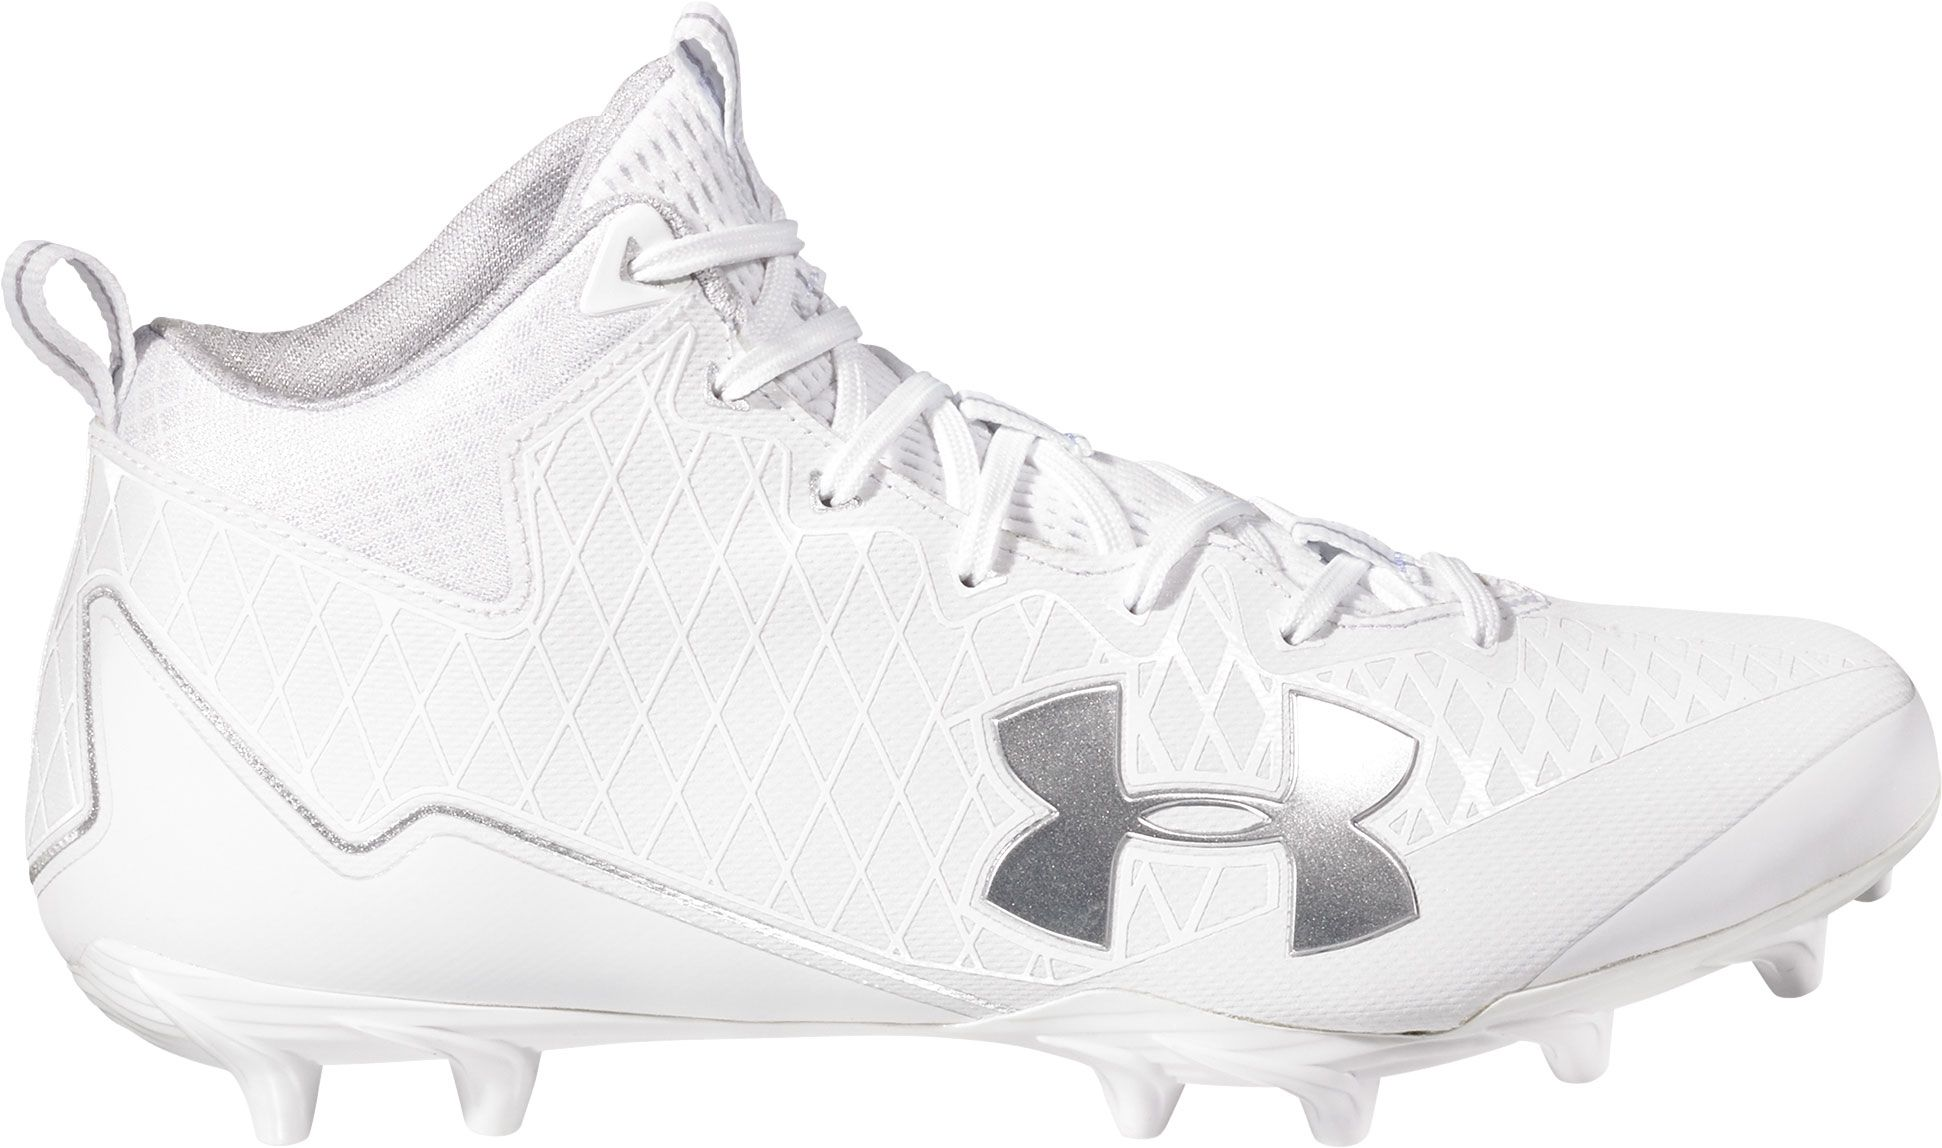 7214f8d435e6 Under Armour Mens Banshee Mid MC Lacrosse Cleats DICKS Sporting Goods 30%OFF